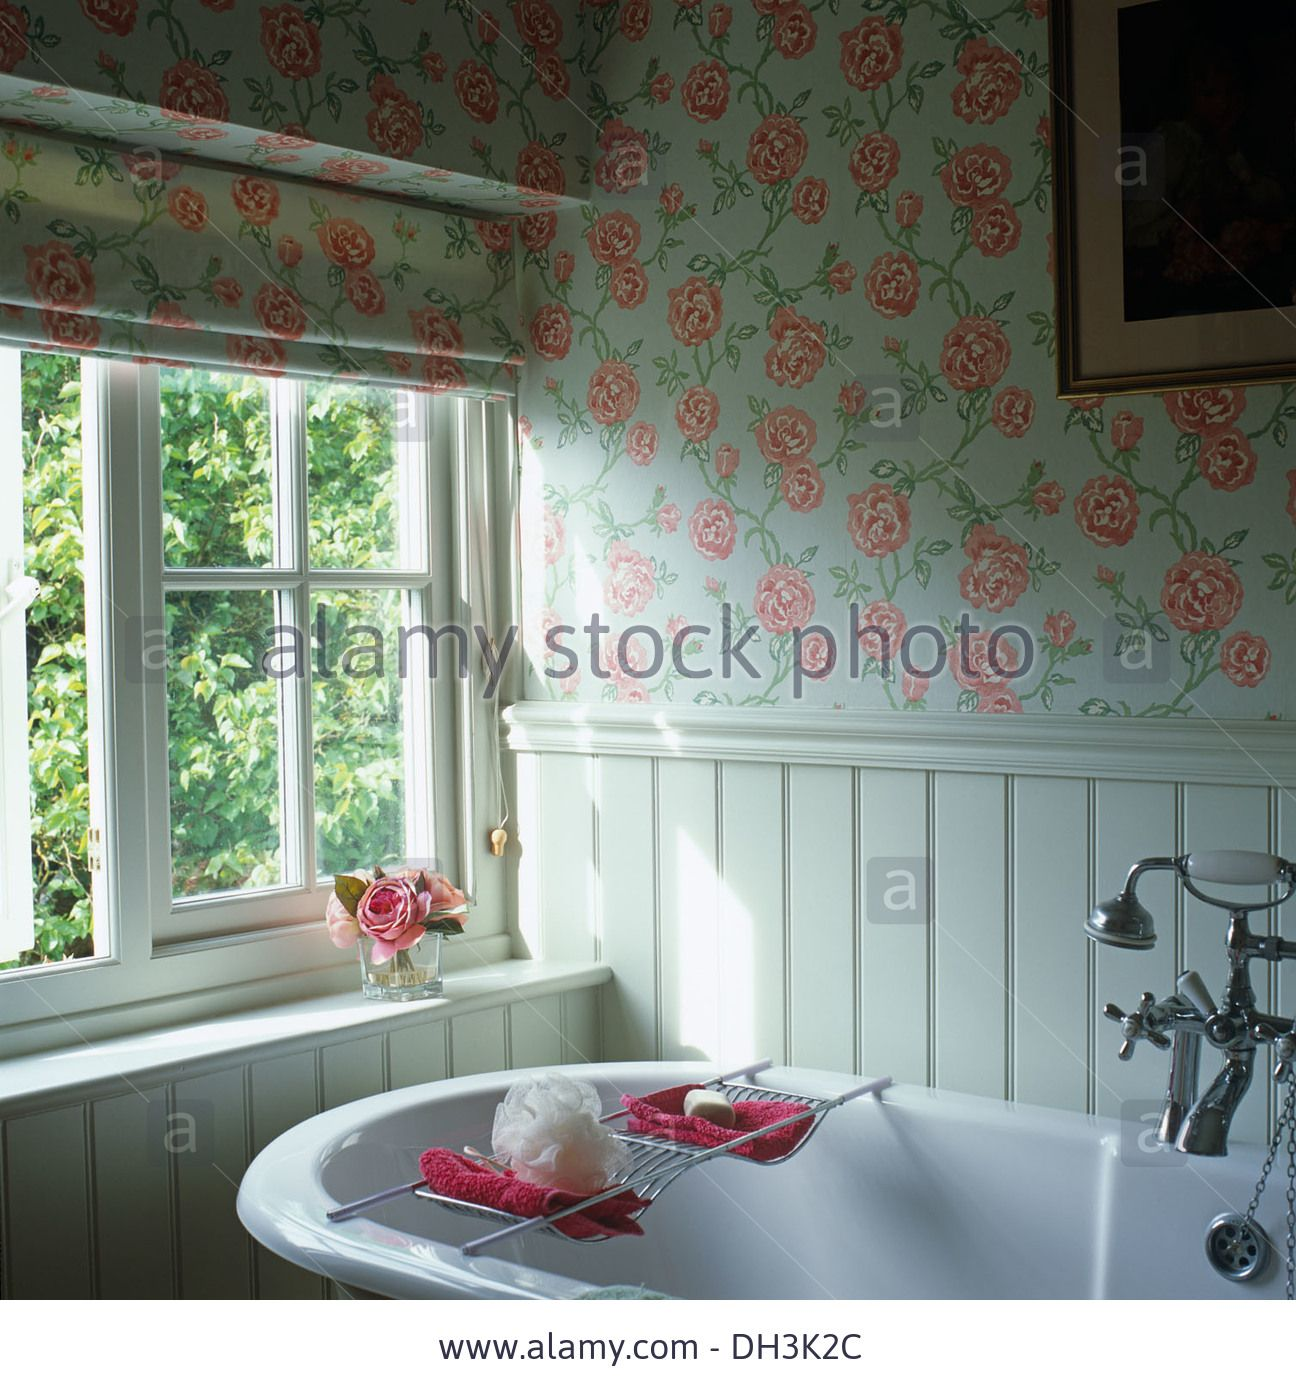 bathrooms with rolltop baths - Google Search